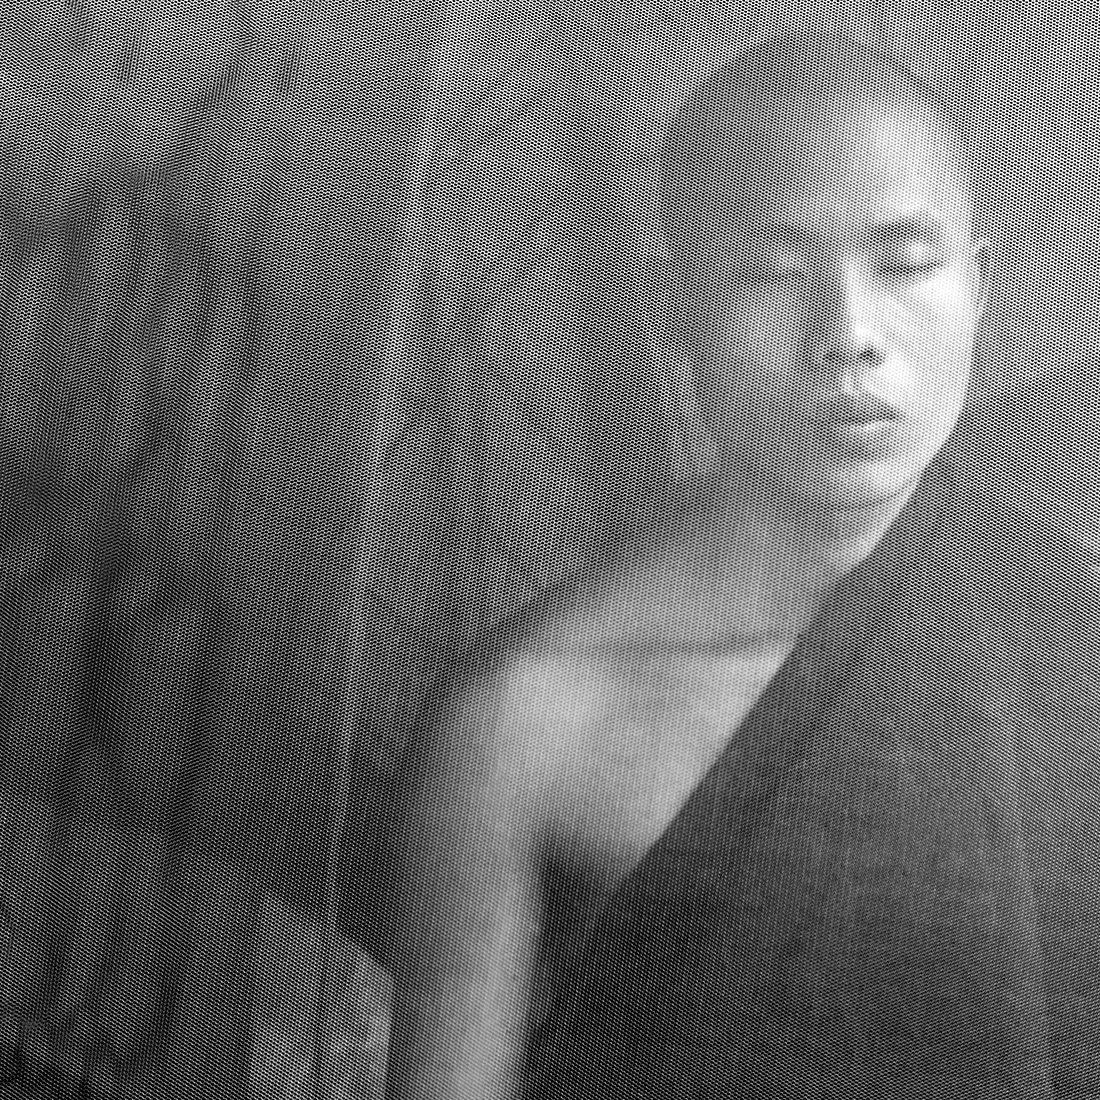 Seeking Enlightenment - The Mosquito Nets